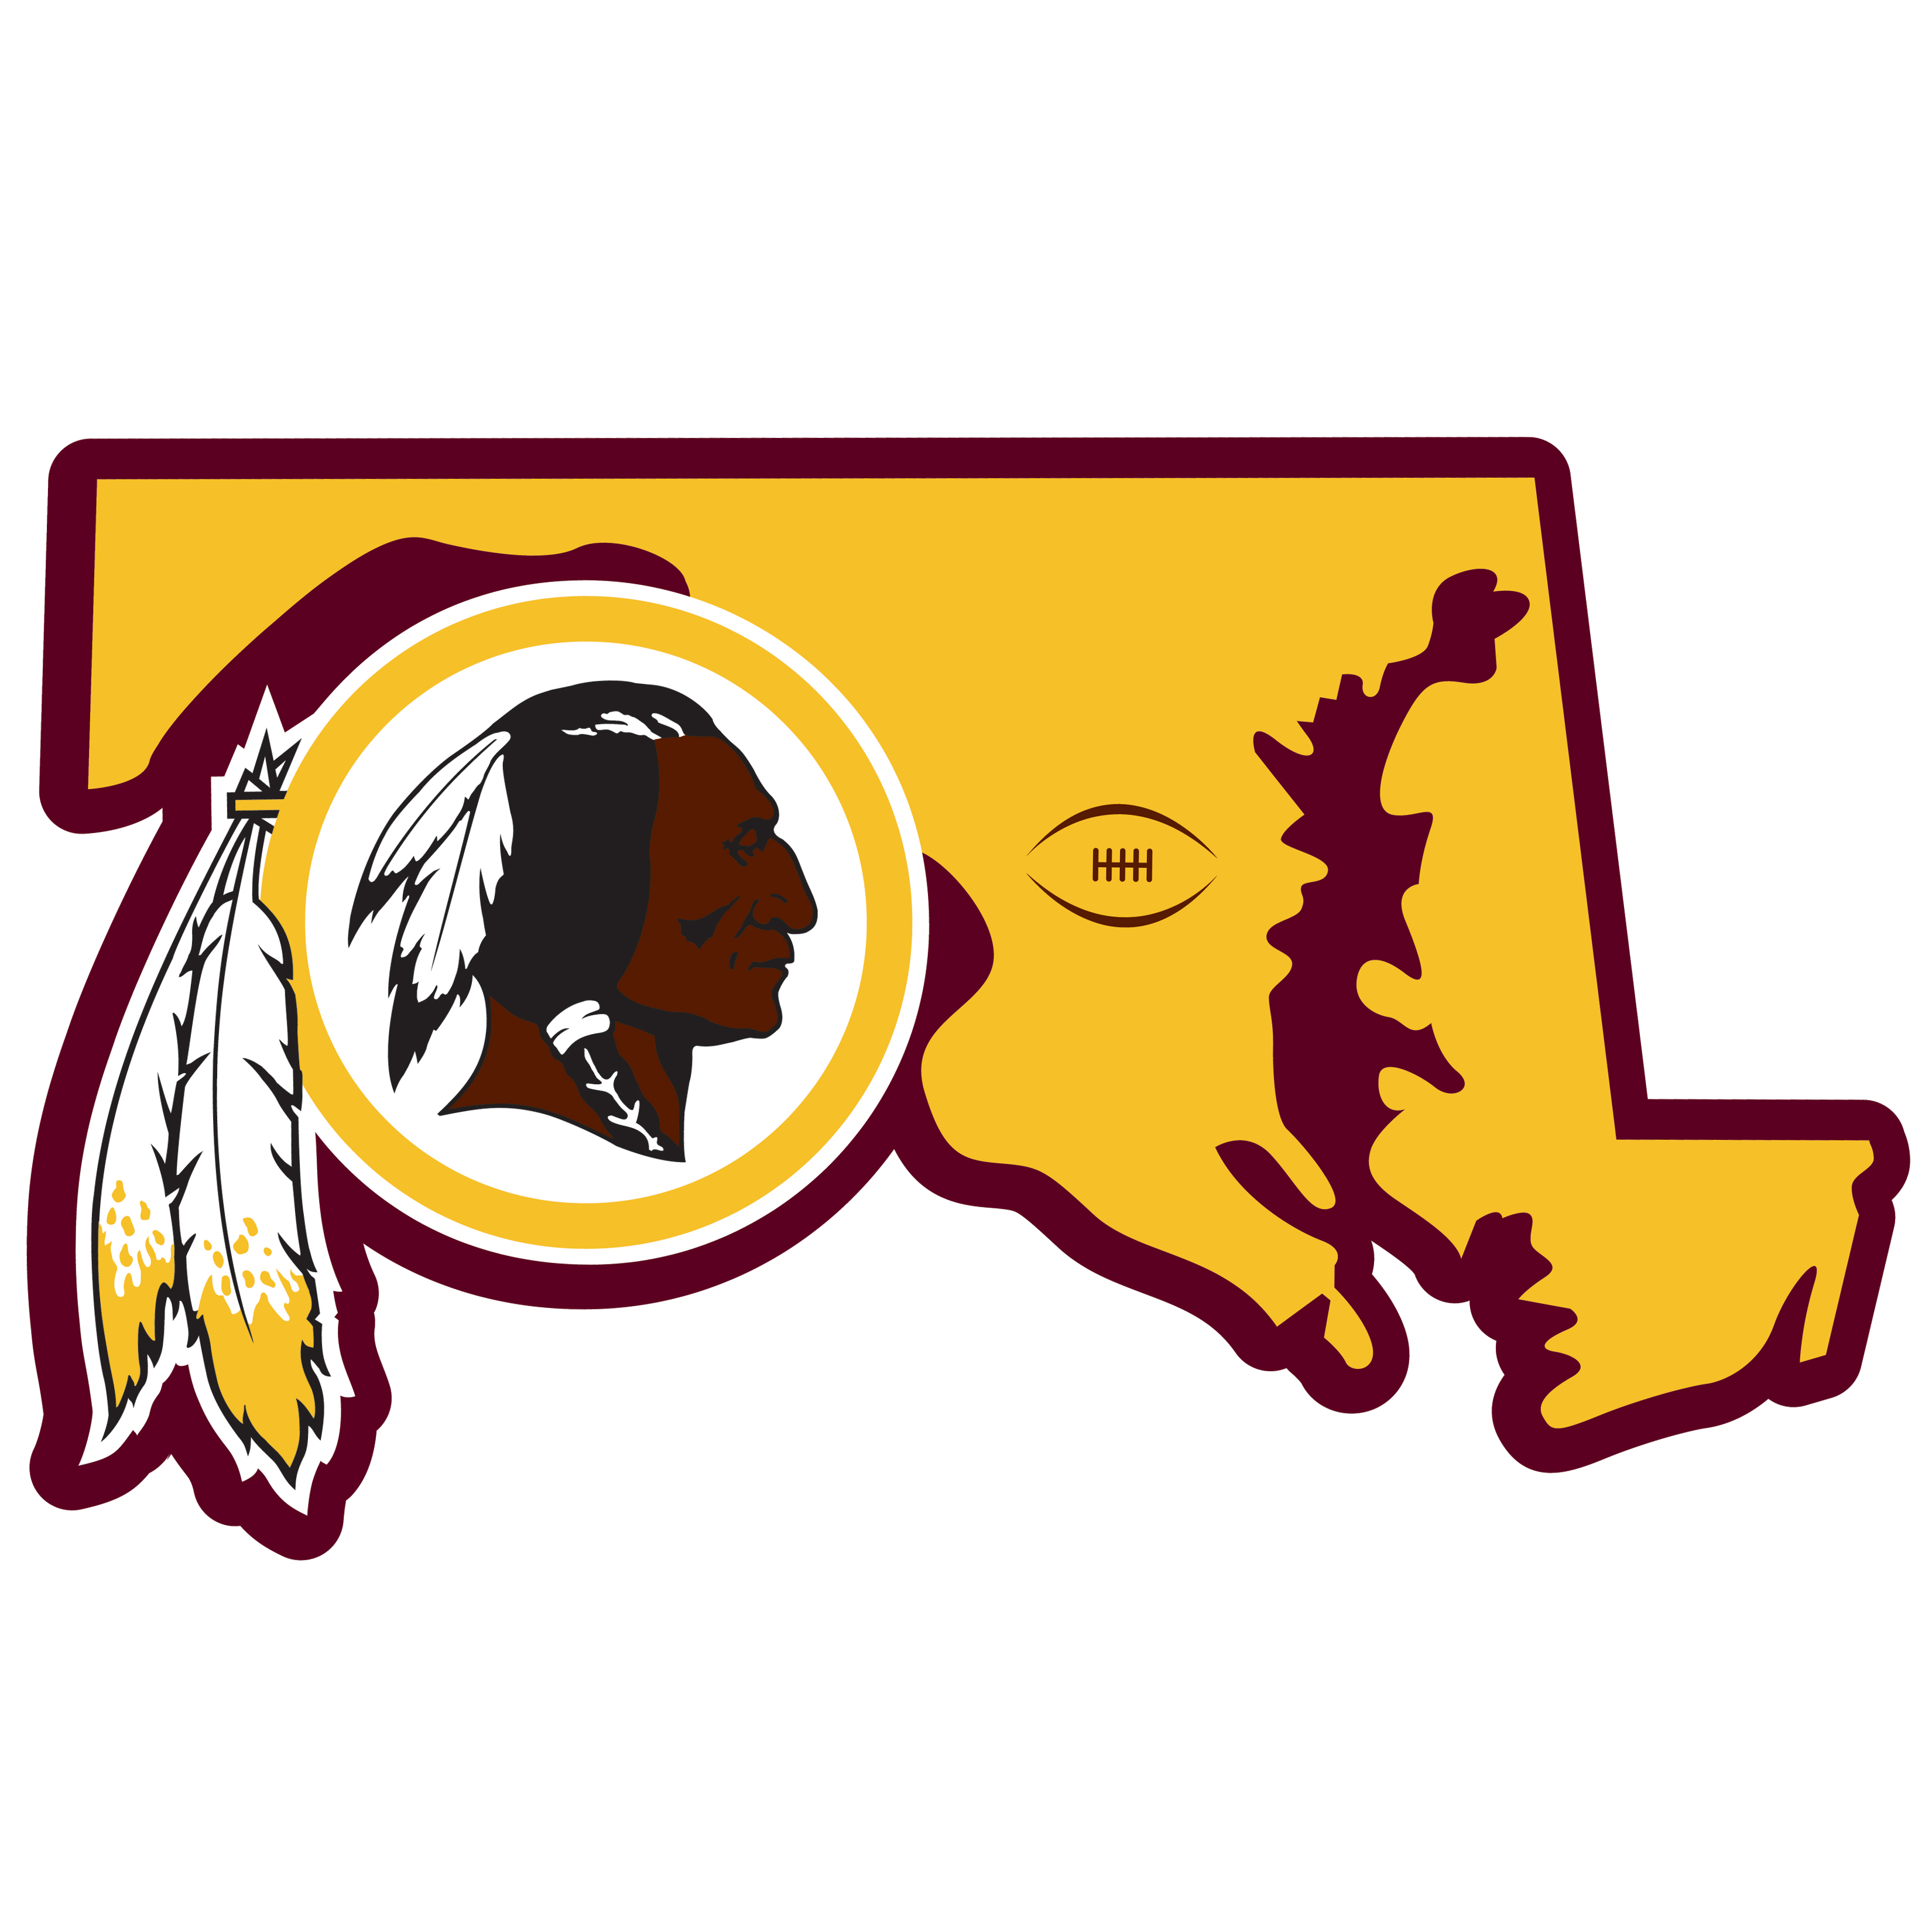 Washington Redskins Home State 11 Inch Magnet - Whether you are caravaning to the game or having a tailgate party make sure you car is wearing its fan gear with our extra large, 11 inch Washington Redskins home state magnets. These striking magnets can be easily placed on for game day and removed without he residue left by decals. The design features a bright state outline with the location of the team highlighted with a football and a large team logo.